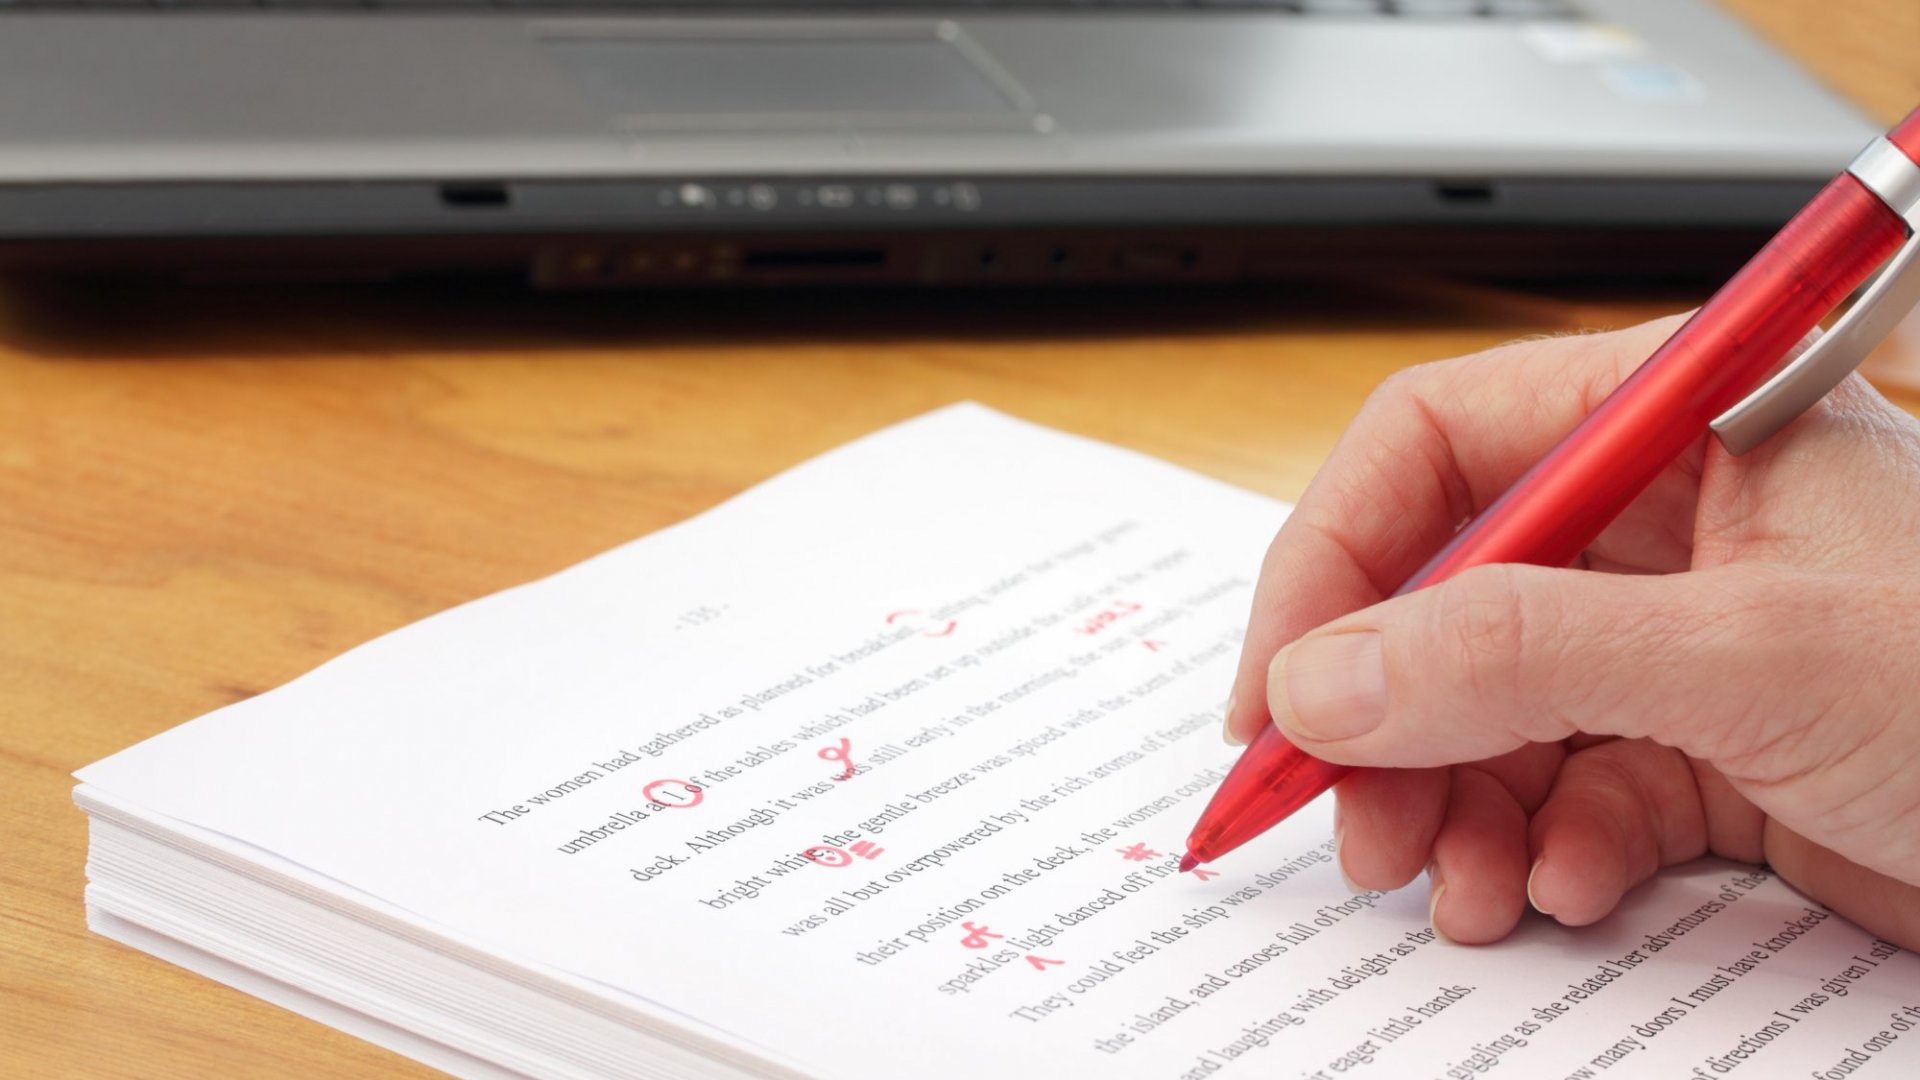 How to Polish Your Business Writing, According to 'Grammar Girl'